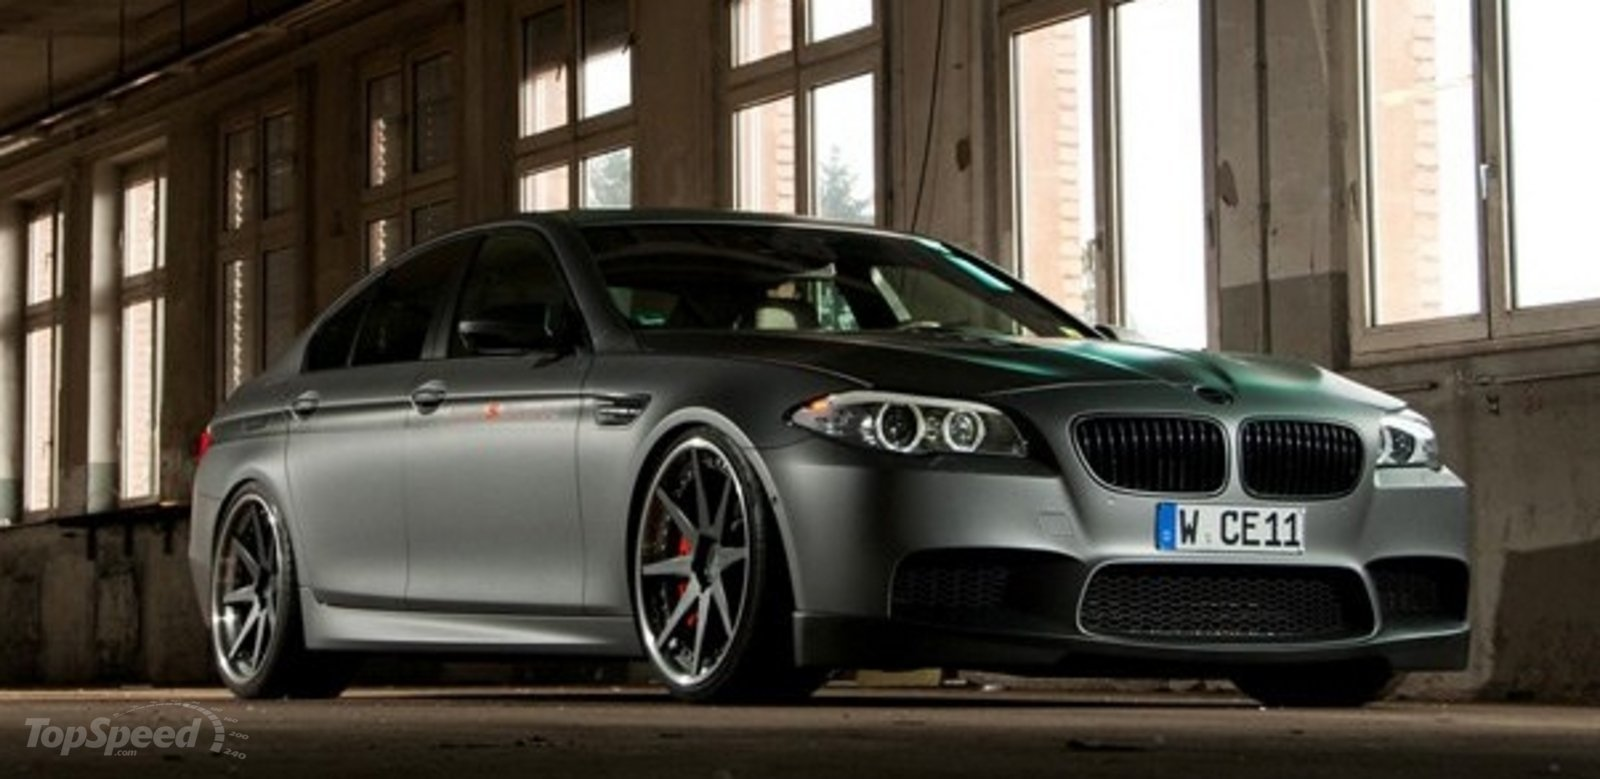 Matte Grey Car >> 2013 BMW M5 MH5 S Biturbo By Manhart Racing Review - Top Speed